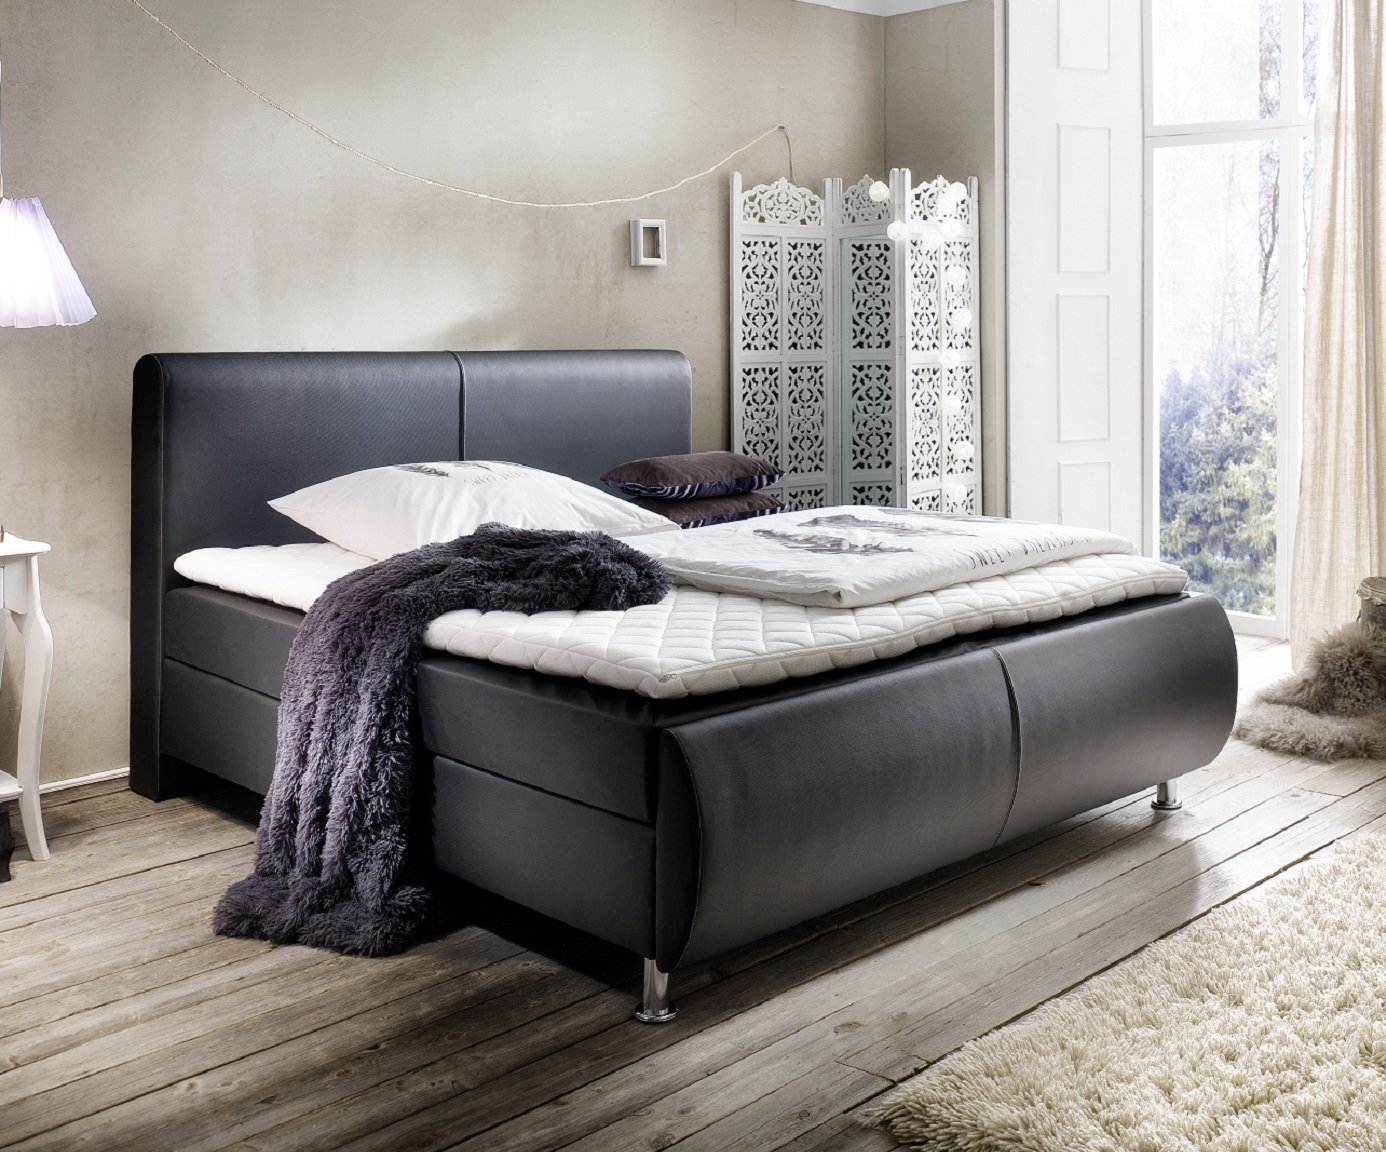 boxspringbett amondo schwarz 140cm x 200cm. Black Bedroom Furniture Sets. Home Design Ideas